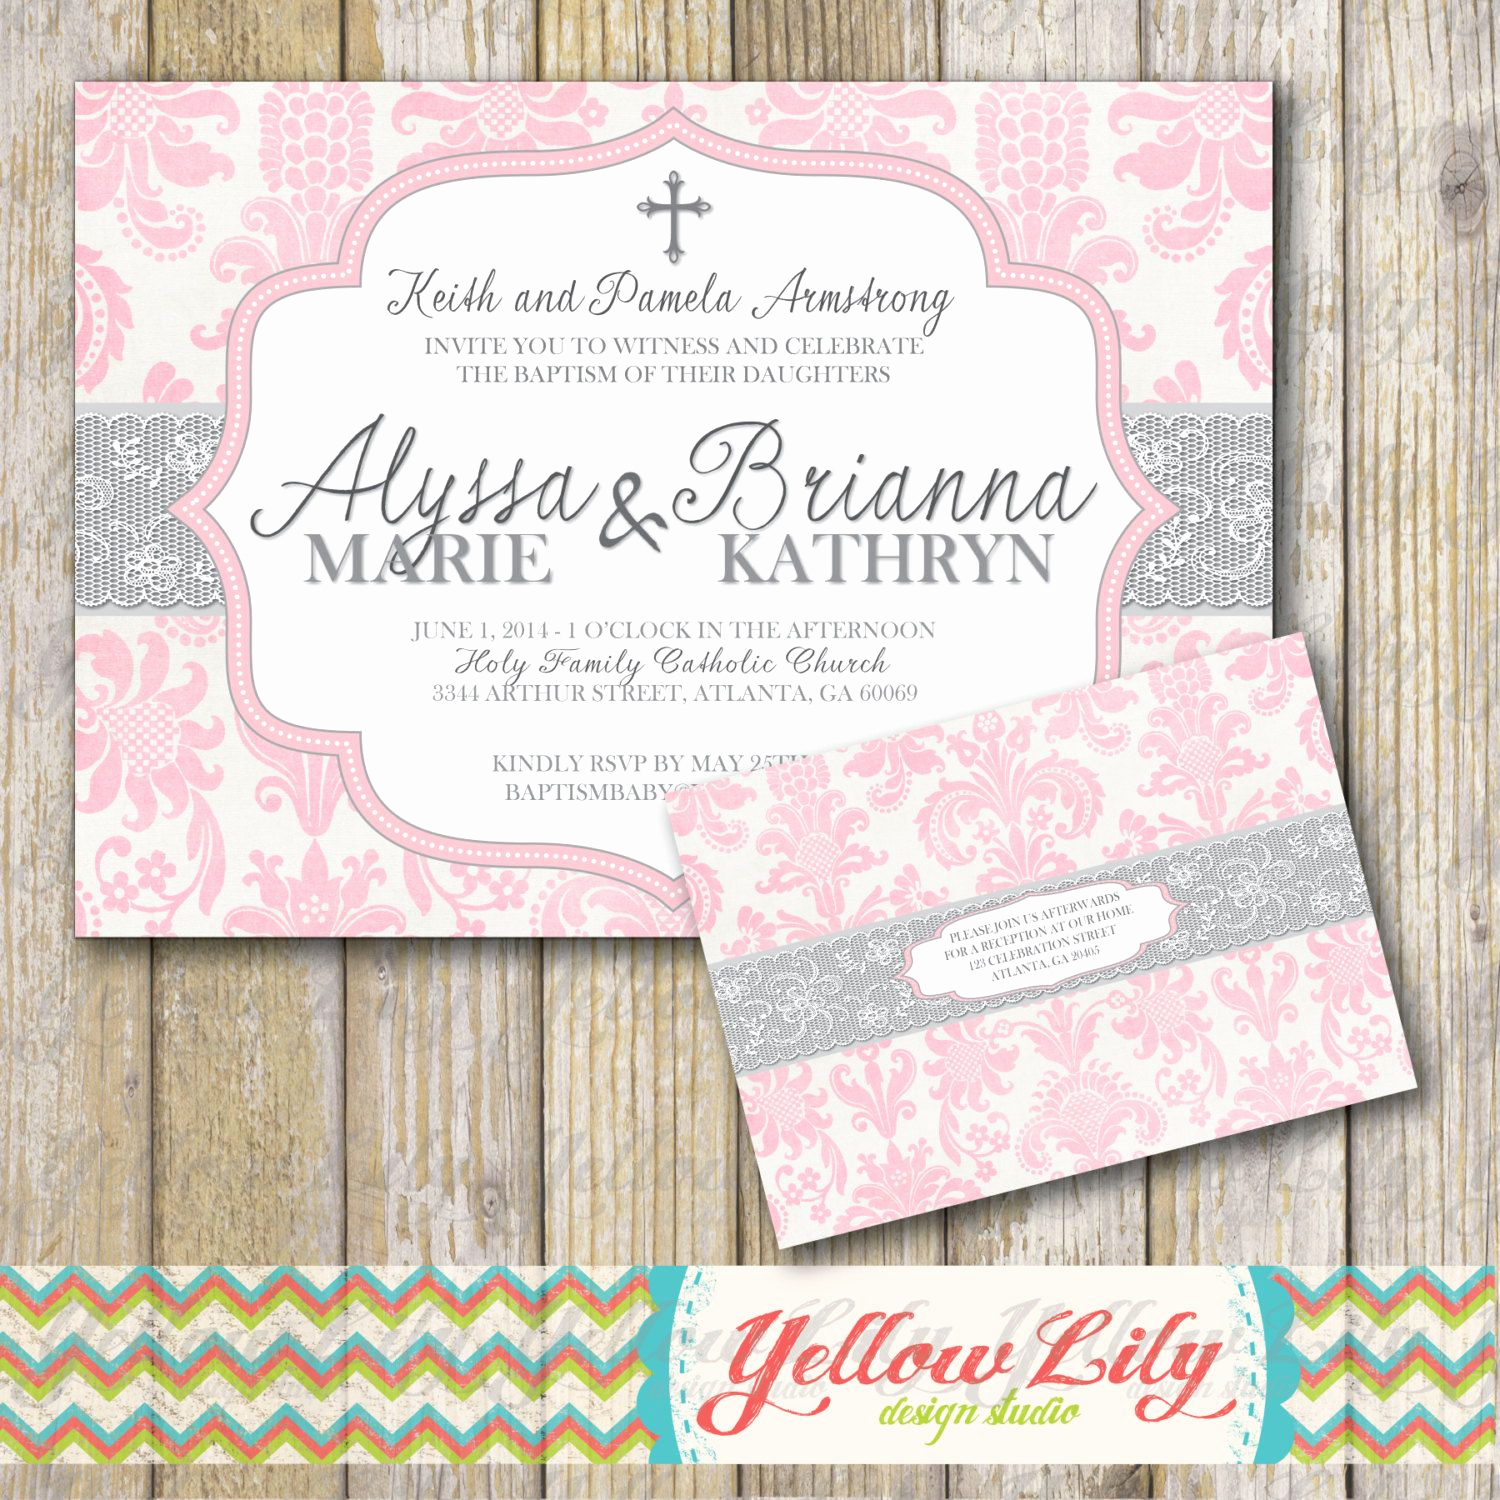 Christening and Birthday Invitation Beautiful Baby Girl Baptism Invitation Twins Girls Diy by